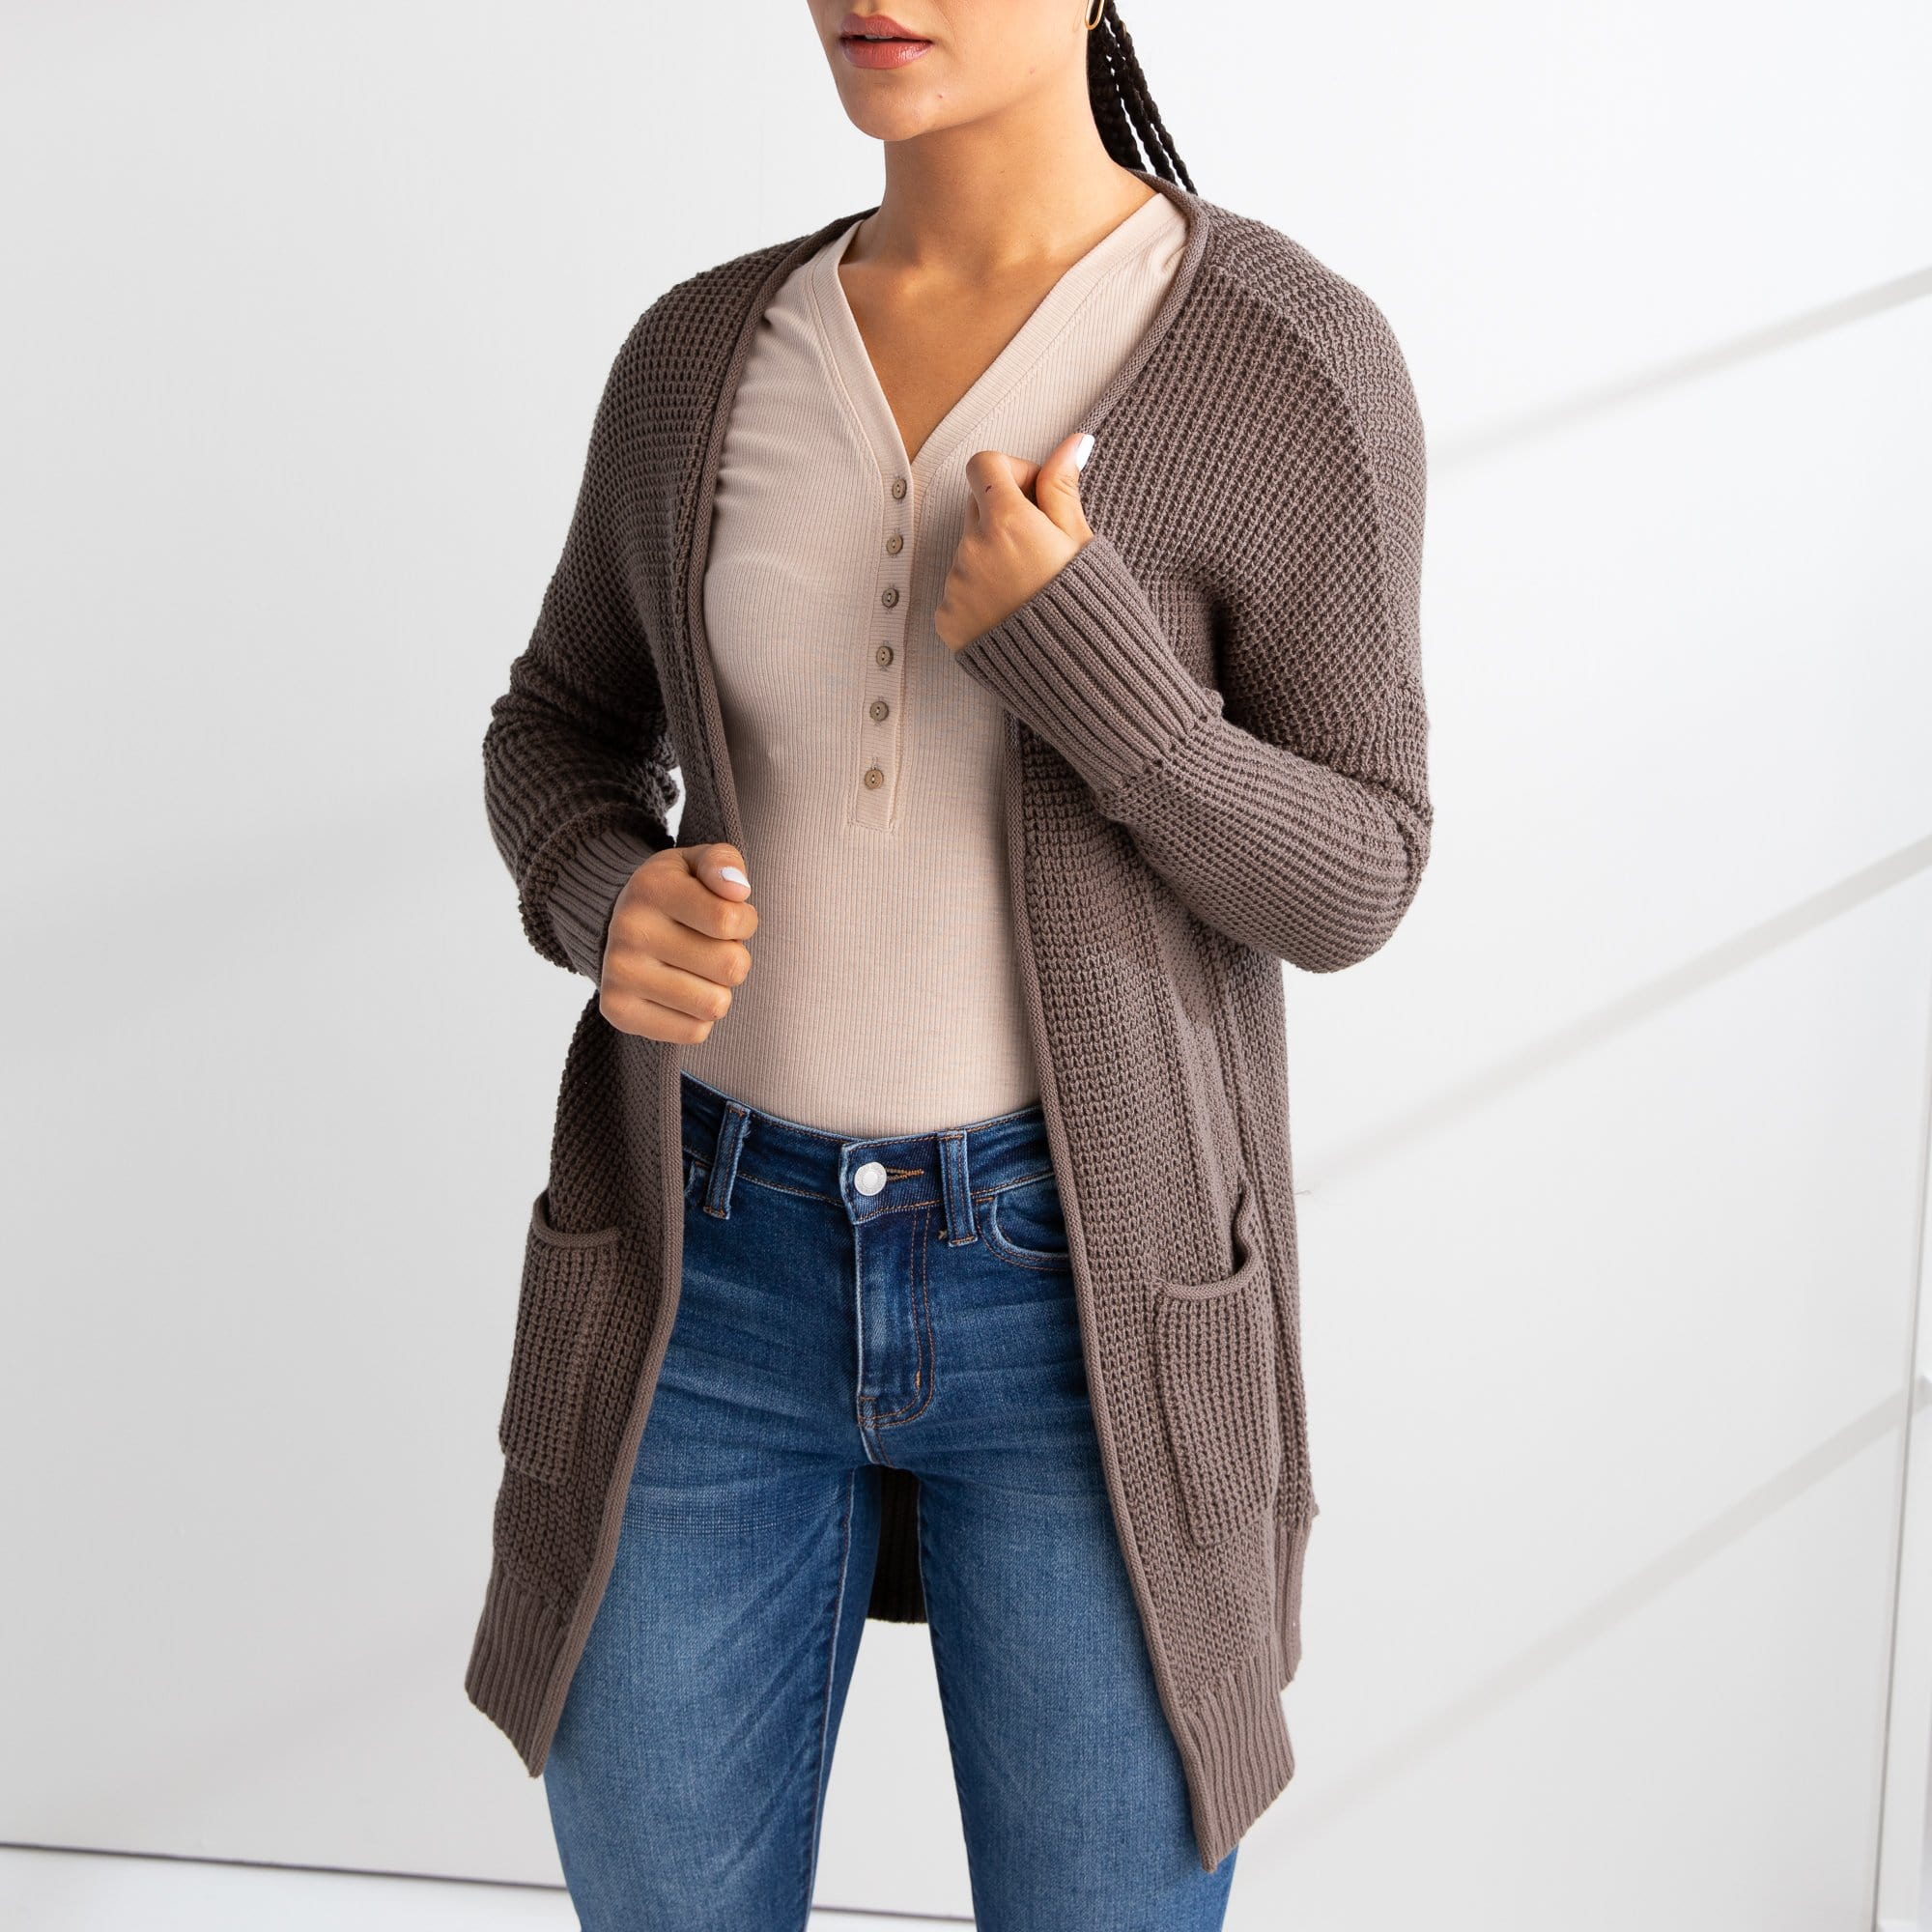 Fan Favorite Cardigan